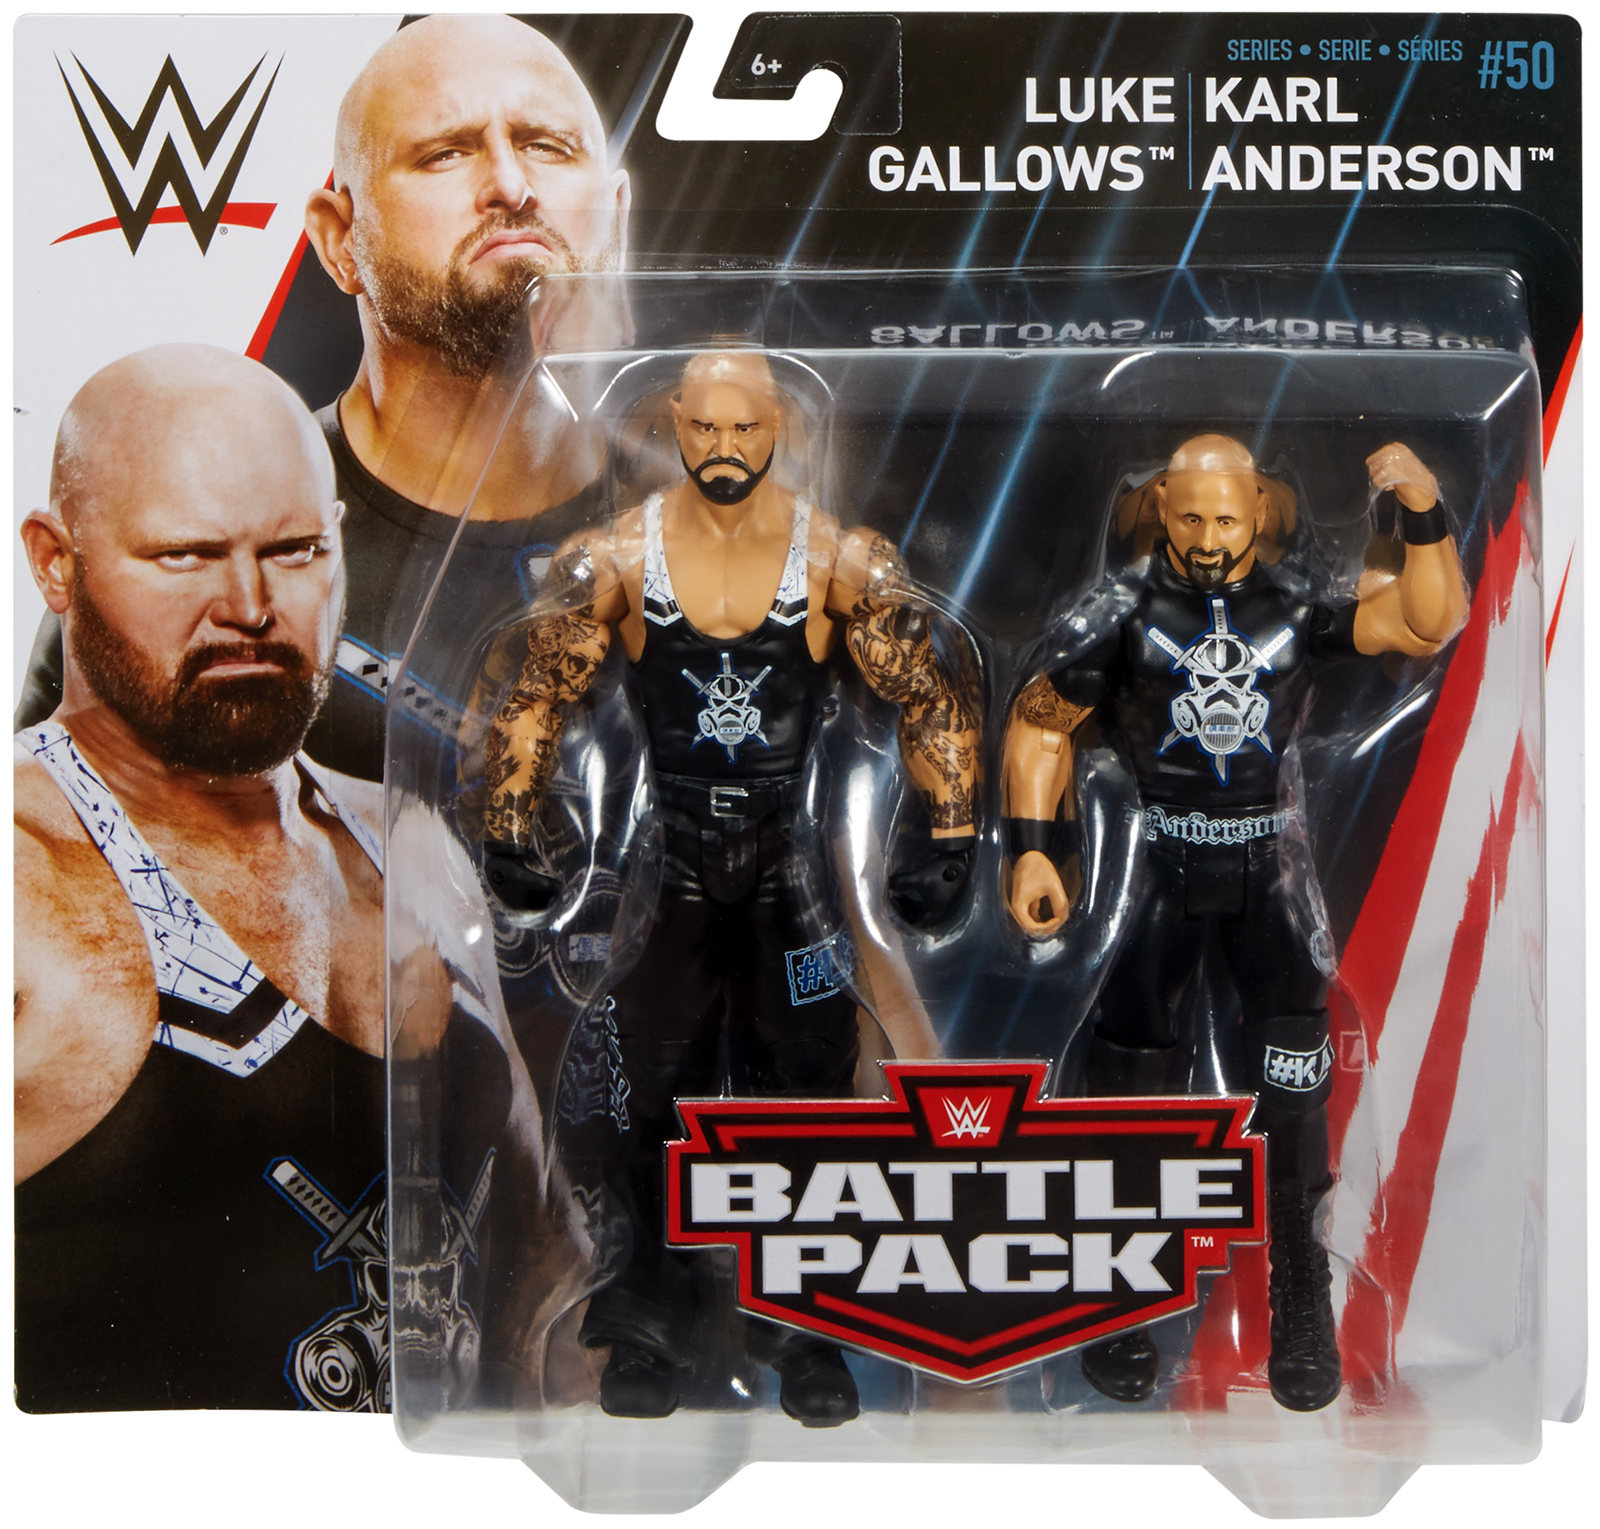 Karl Anderson & Luke Gallows - WWE Battle Packs 50 Toy Wrestling Action Figures